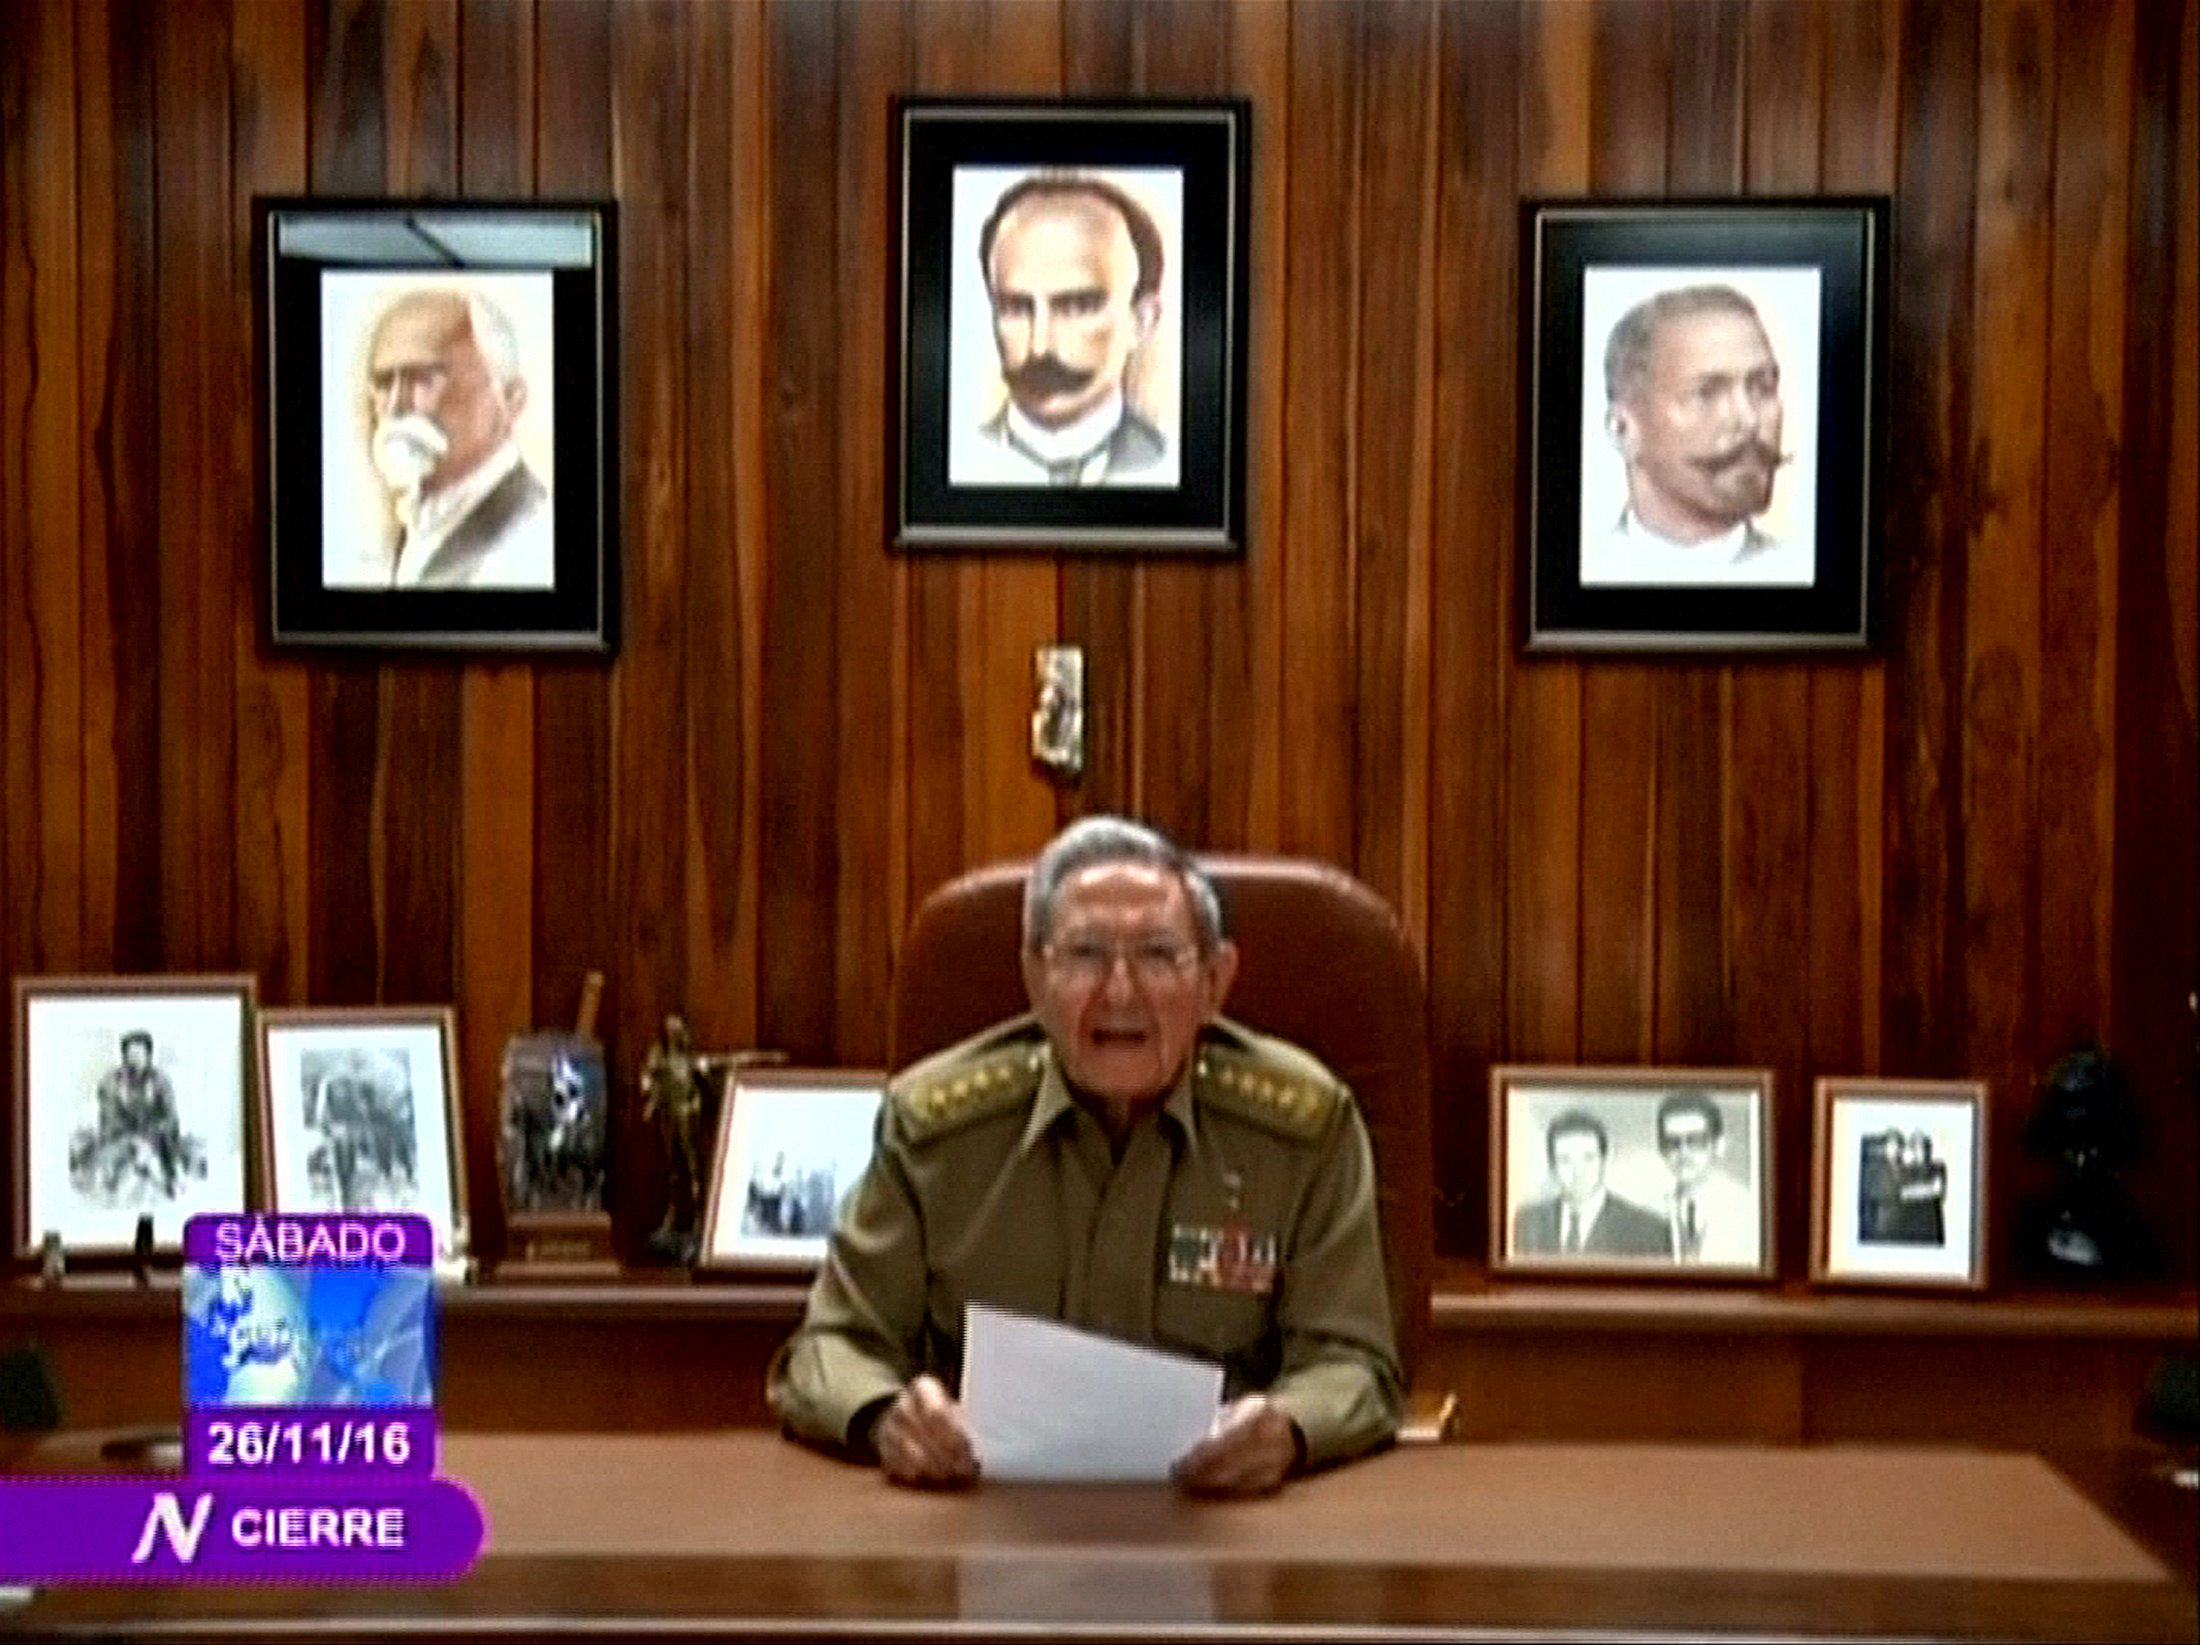 Cuba's President Raul Castro announces the death of his brother, revolutionary leader Fidel Castro, in a still image from government television in Havana, Cuba November 26, 2016. Cuban Television via Reuters TV   EDITORIAL USE ONLY. THIS IMAGE HAS BEEN SUPPLIED BY A THIRD PARTY. IT IS DISTRIBUTED, EXACTLY AS RECEIVED BY REUTERS, AS A SERVICE TO CLIENTS